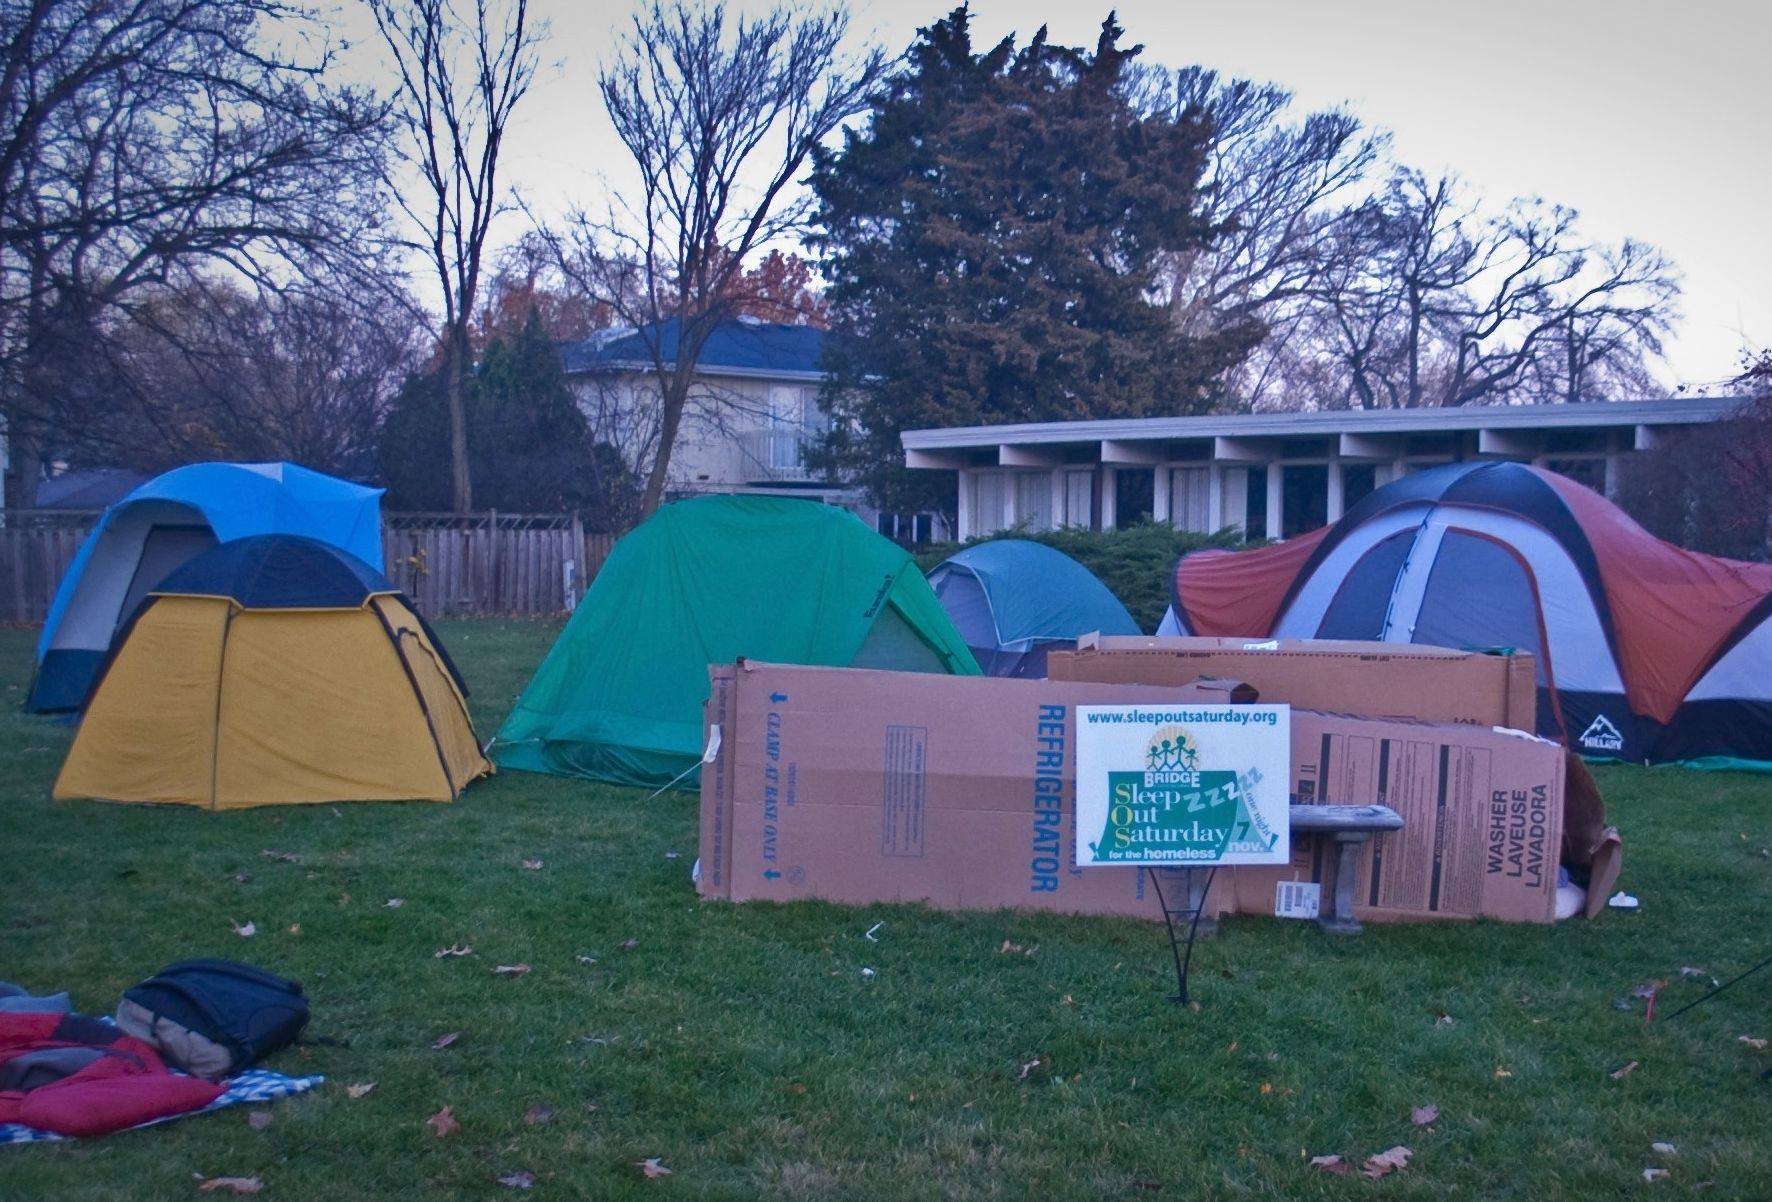 Sleep Out Saturday raised more than $130,000 last year for Bridge Communities' transitional housing program, which serves about 120 families.